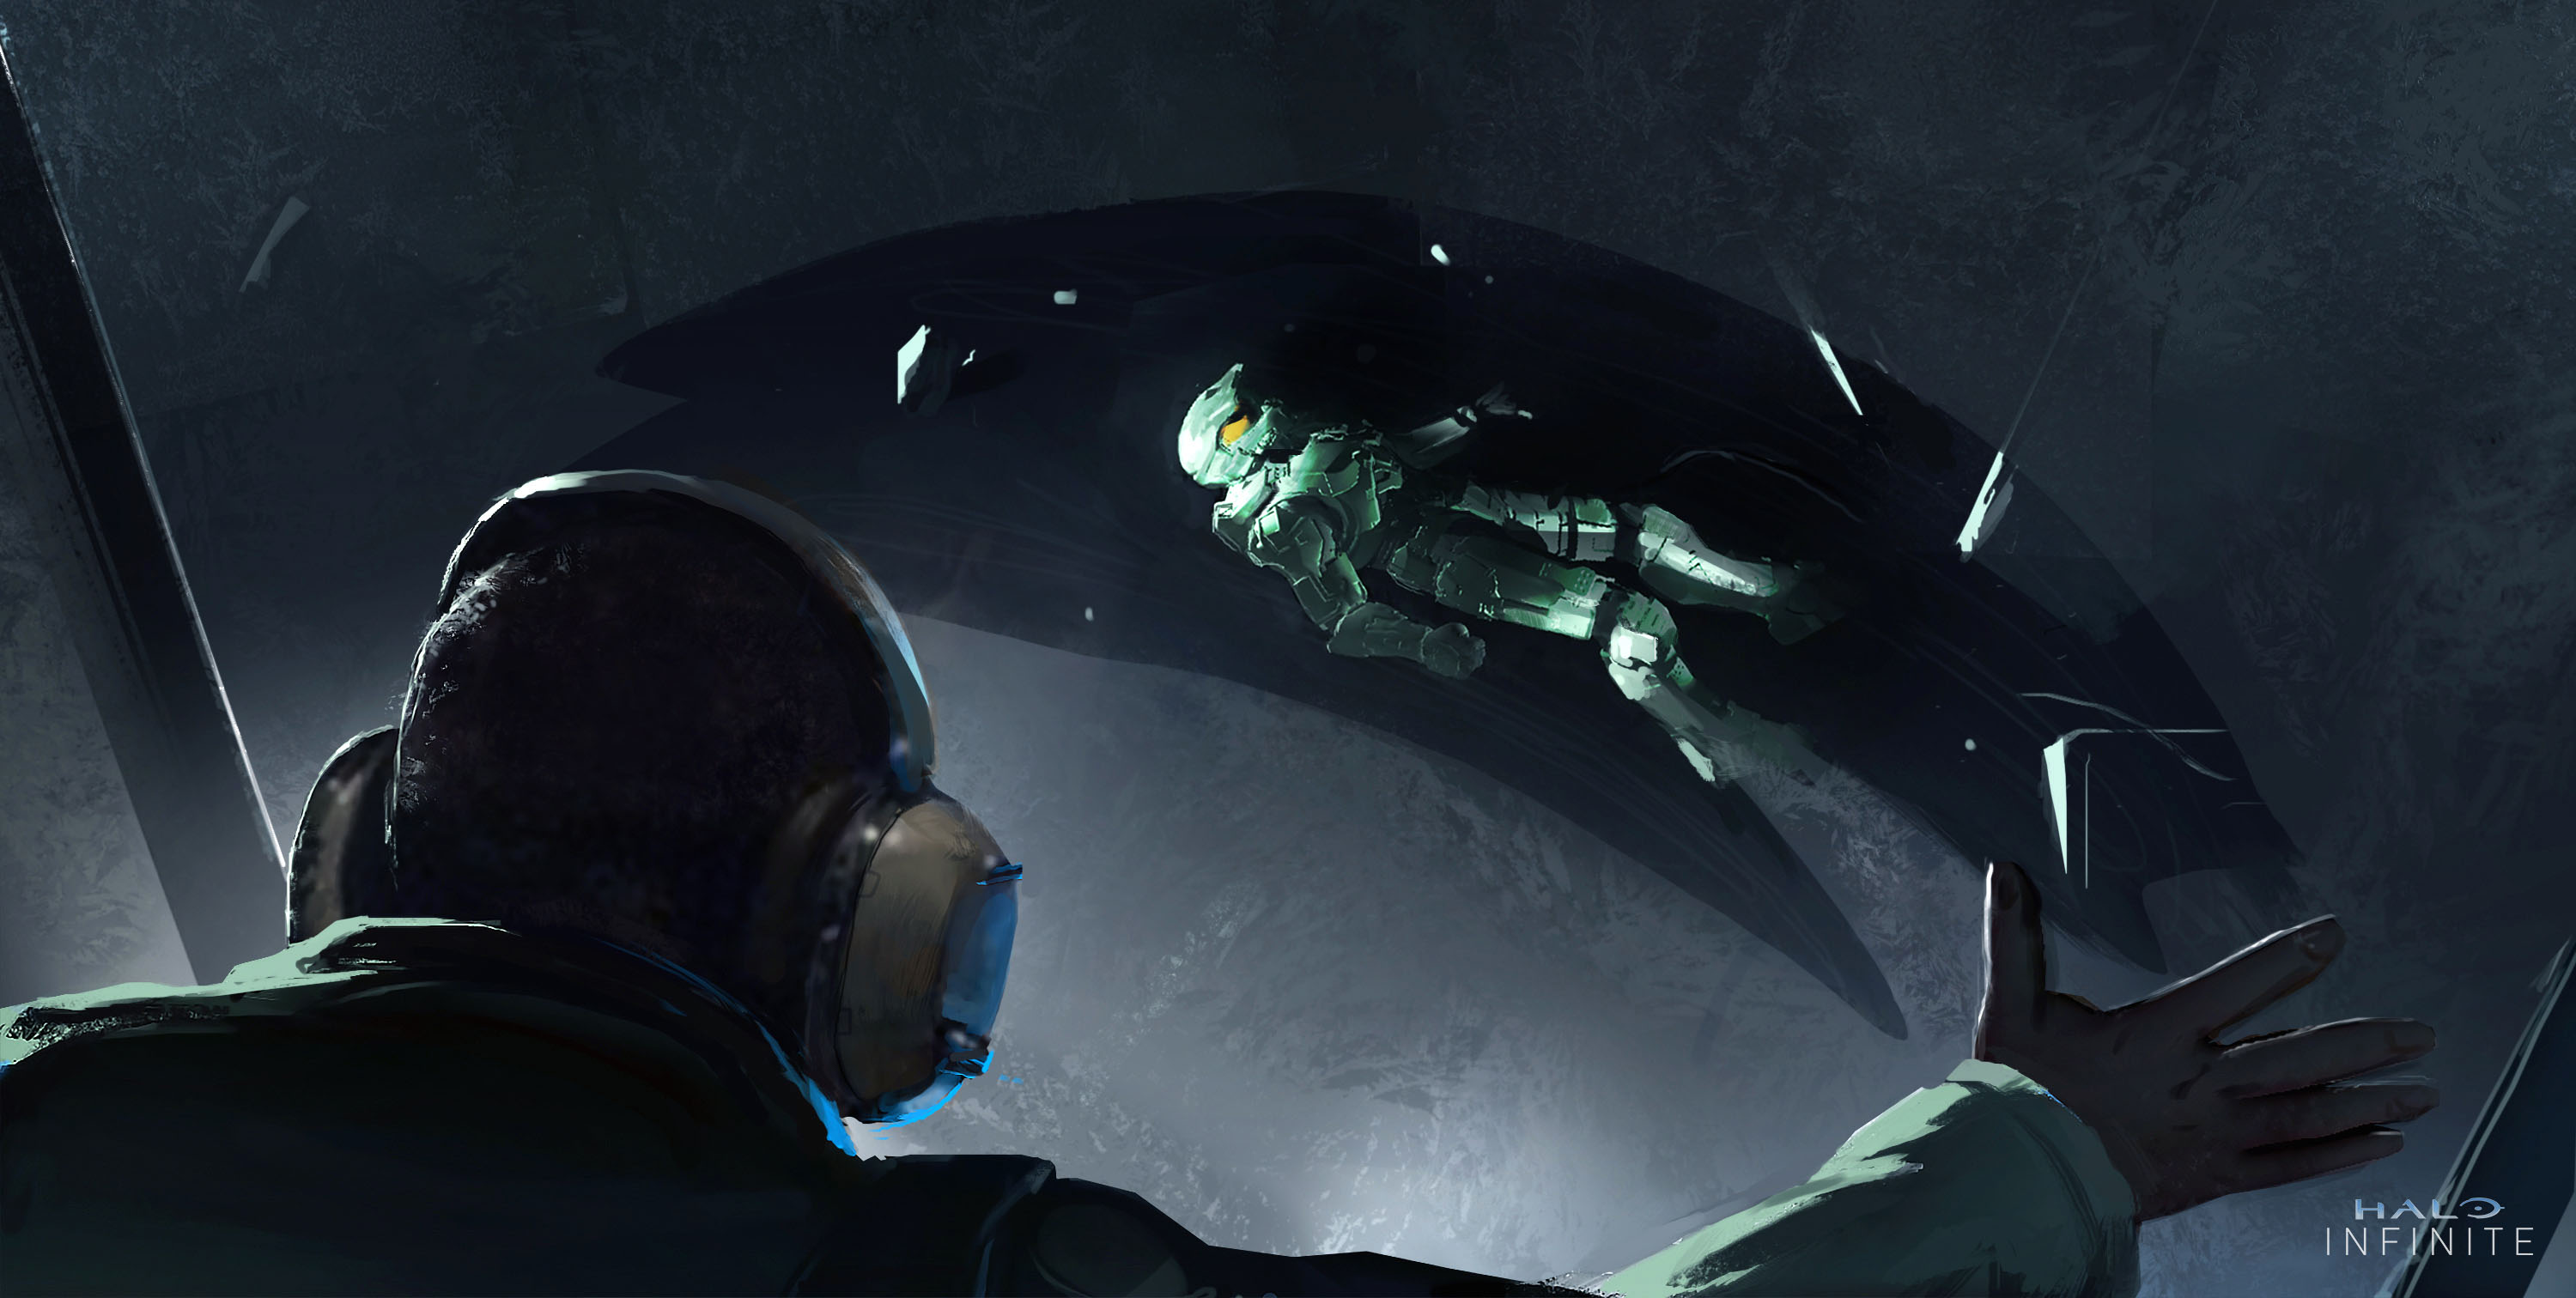 Halo Infinite E3 2019 Hd Games 4k Wallpapers Images